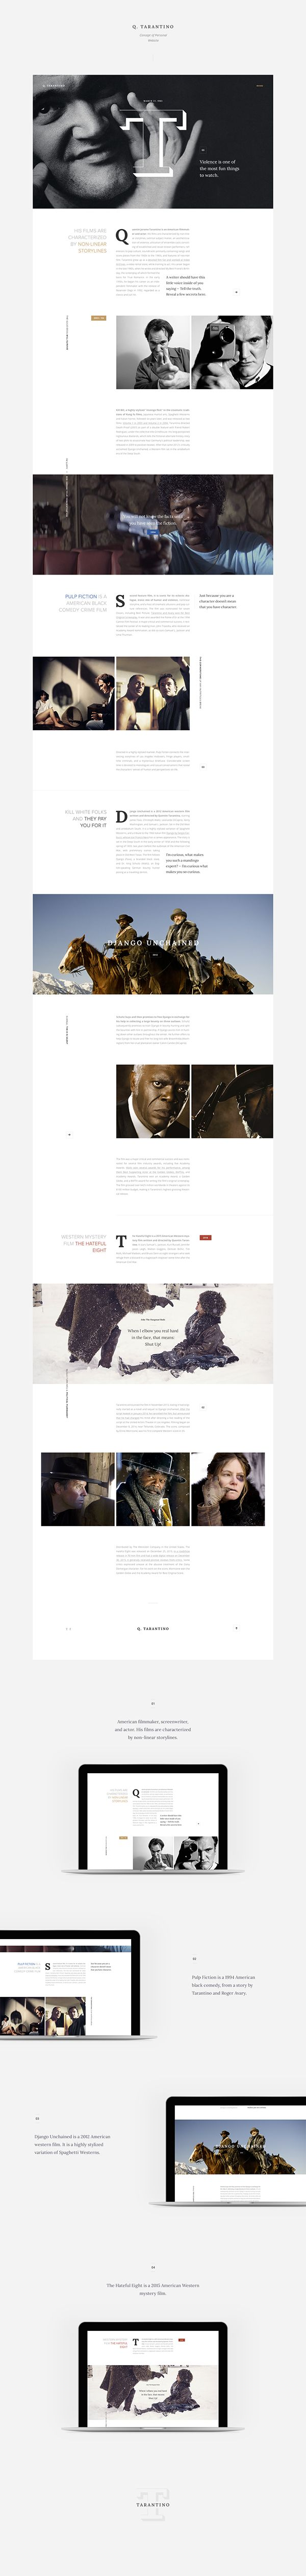 Beautiful Editorial Design for the Web